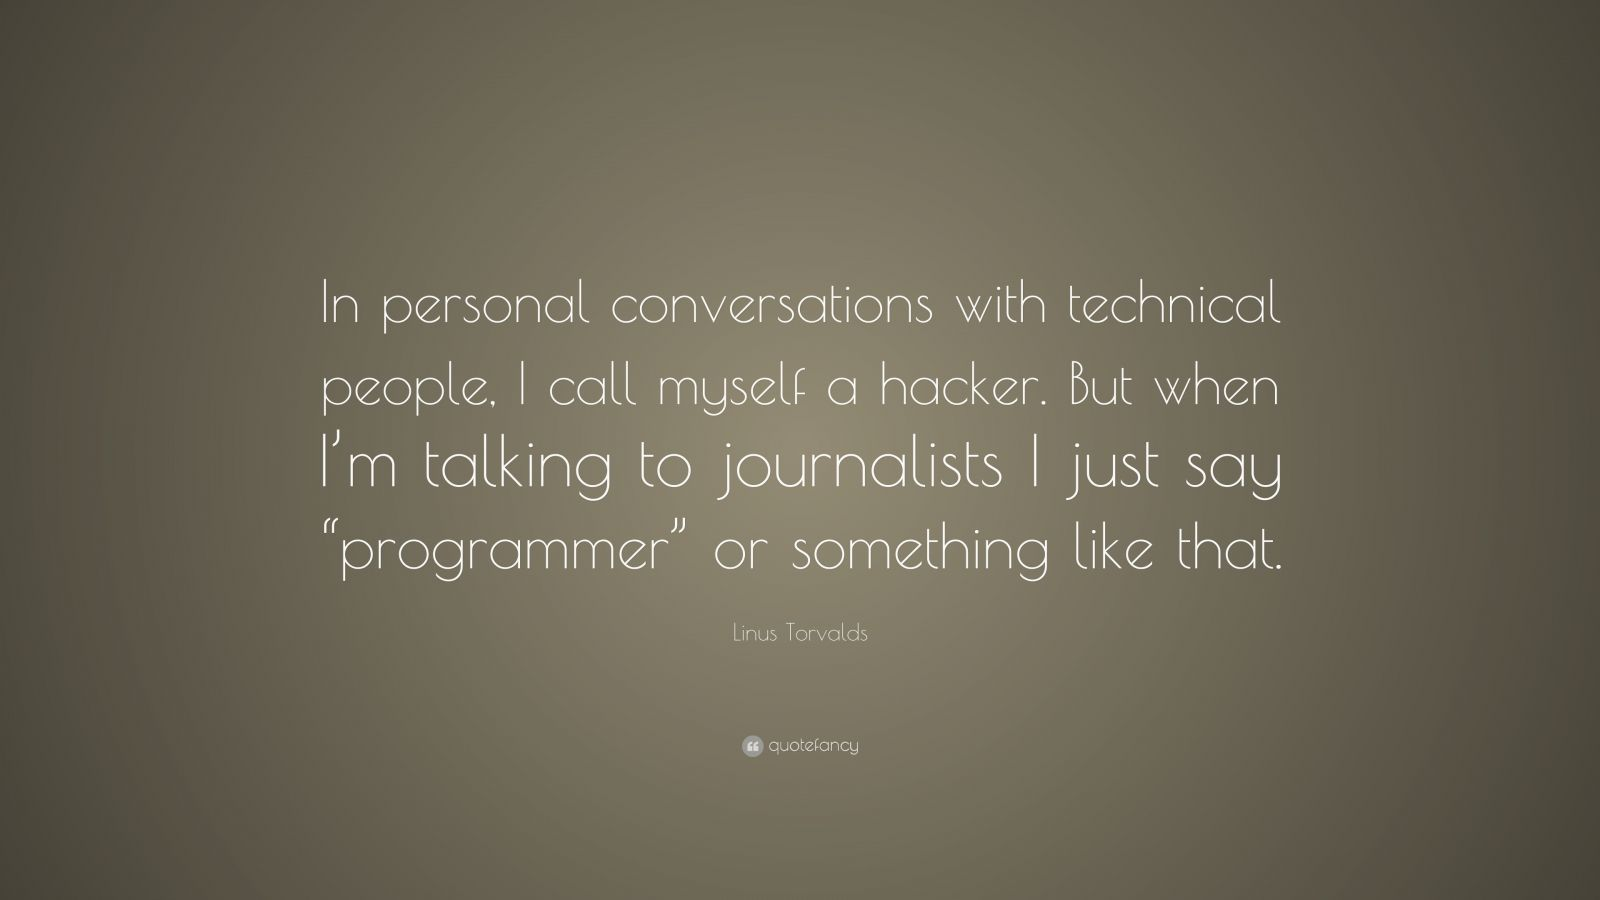 """Linus Torvalds Quote: """"In personal conversations with technical people, I call myself a hacker. But when I'm talking to journalists I just say """"programmer"""" or something like that."""""""